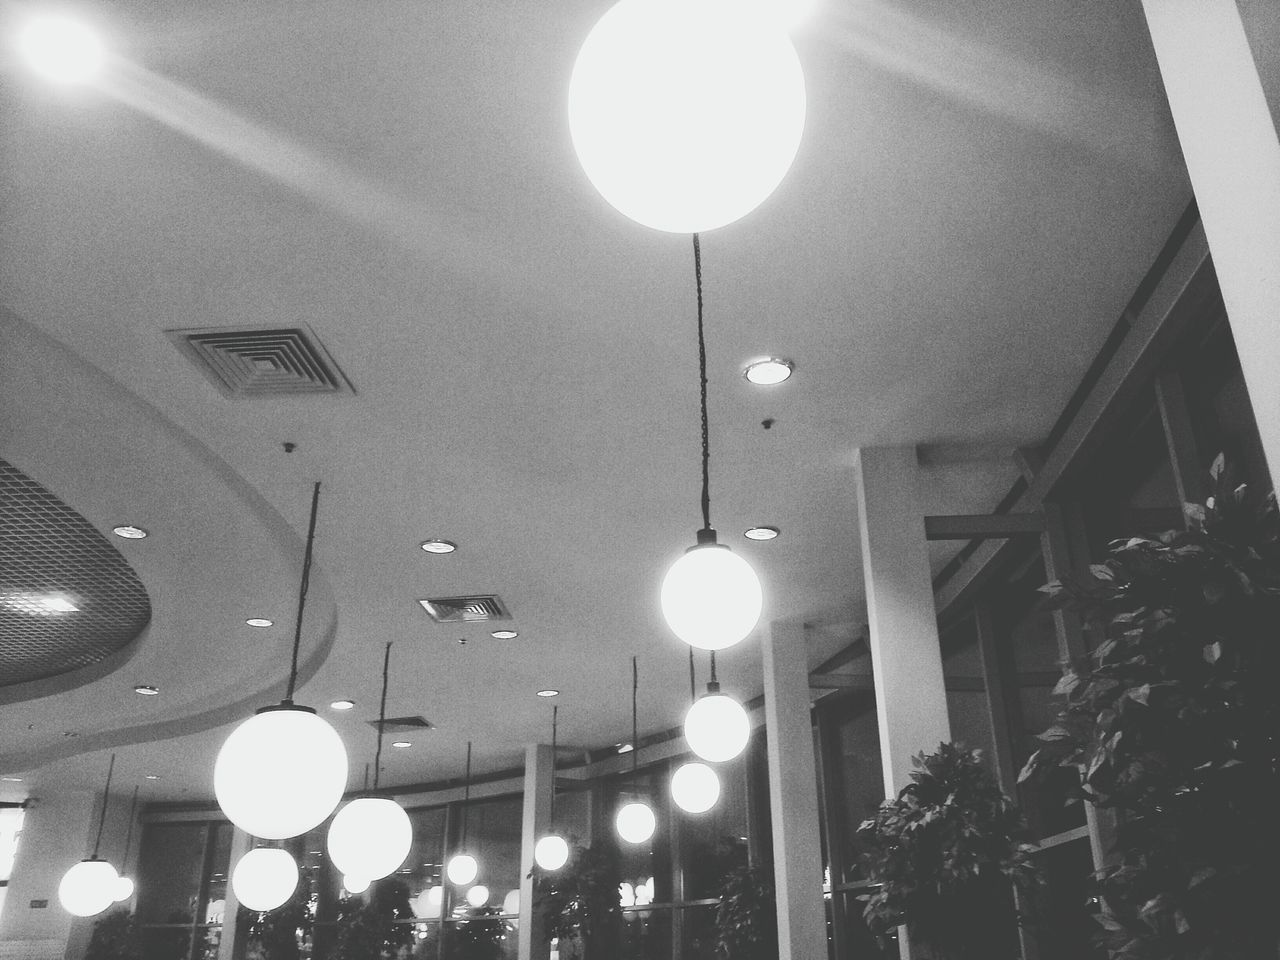 illuminated, lighting equipment, ceiling, low angle view, electric light, indoors, hanging, night, no people, light bulb, architecture